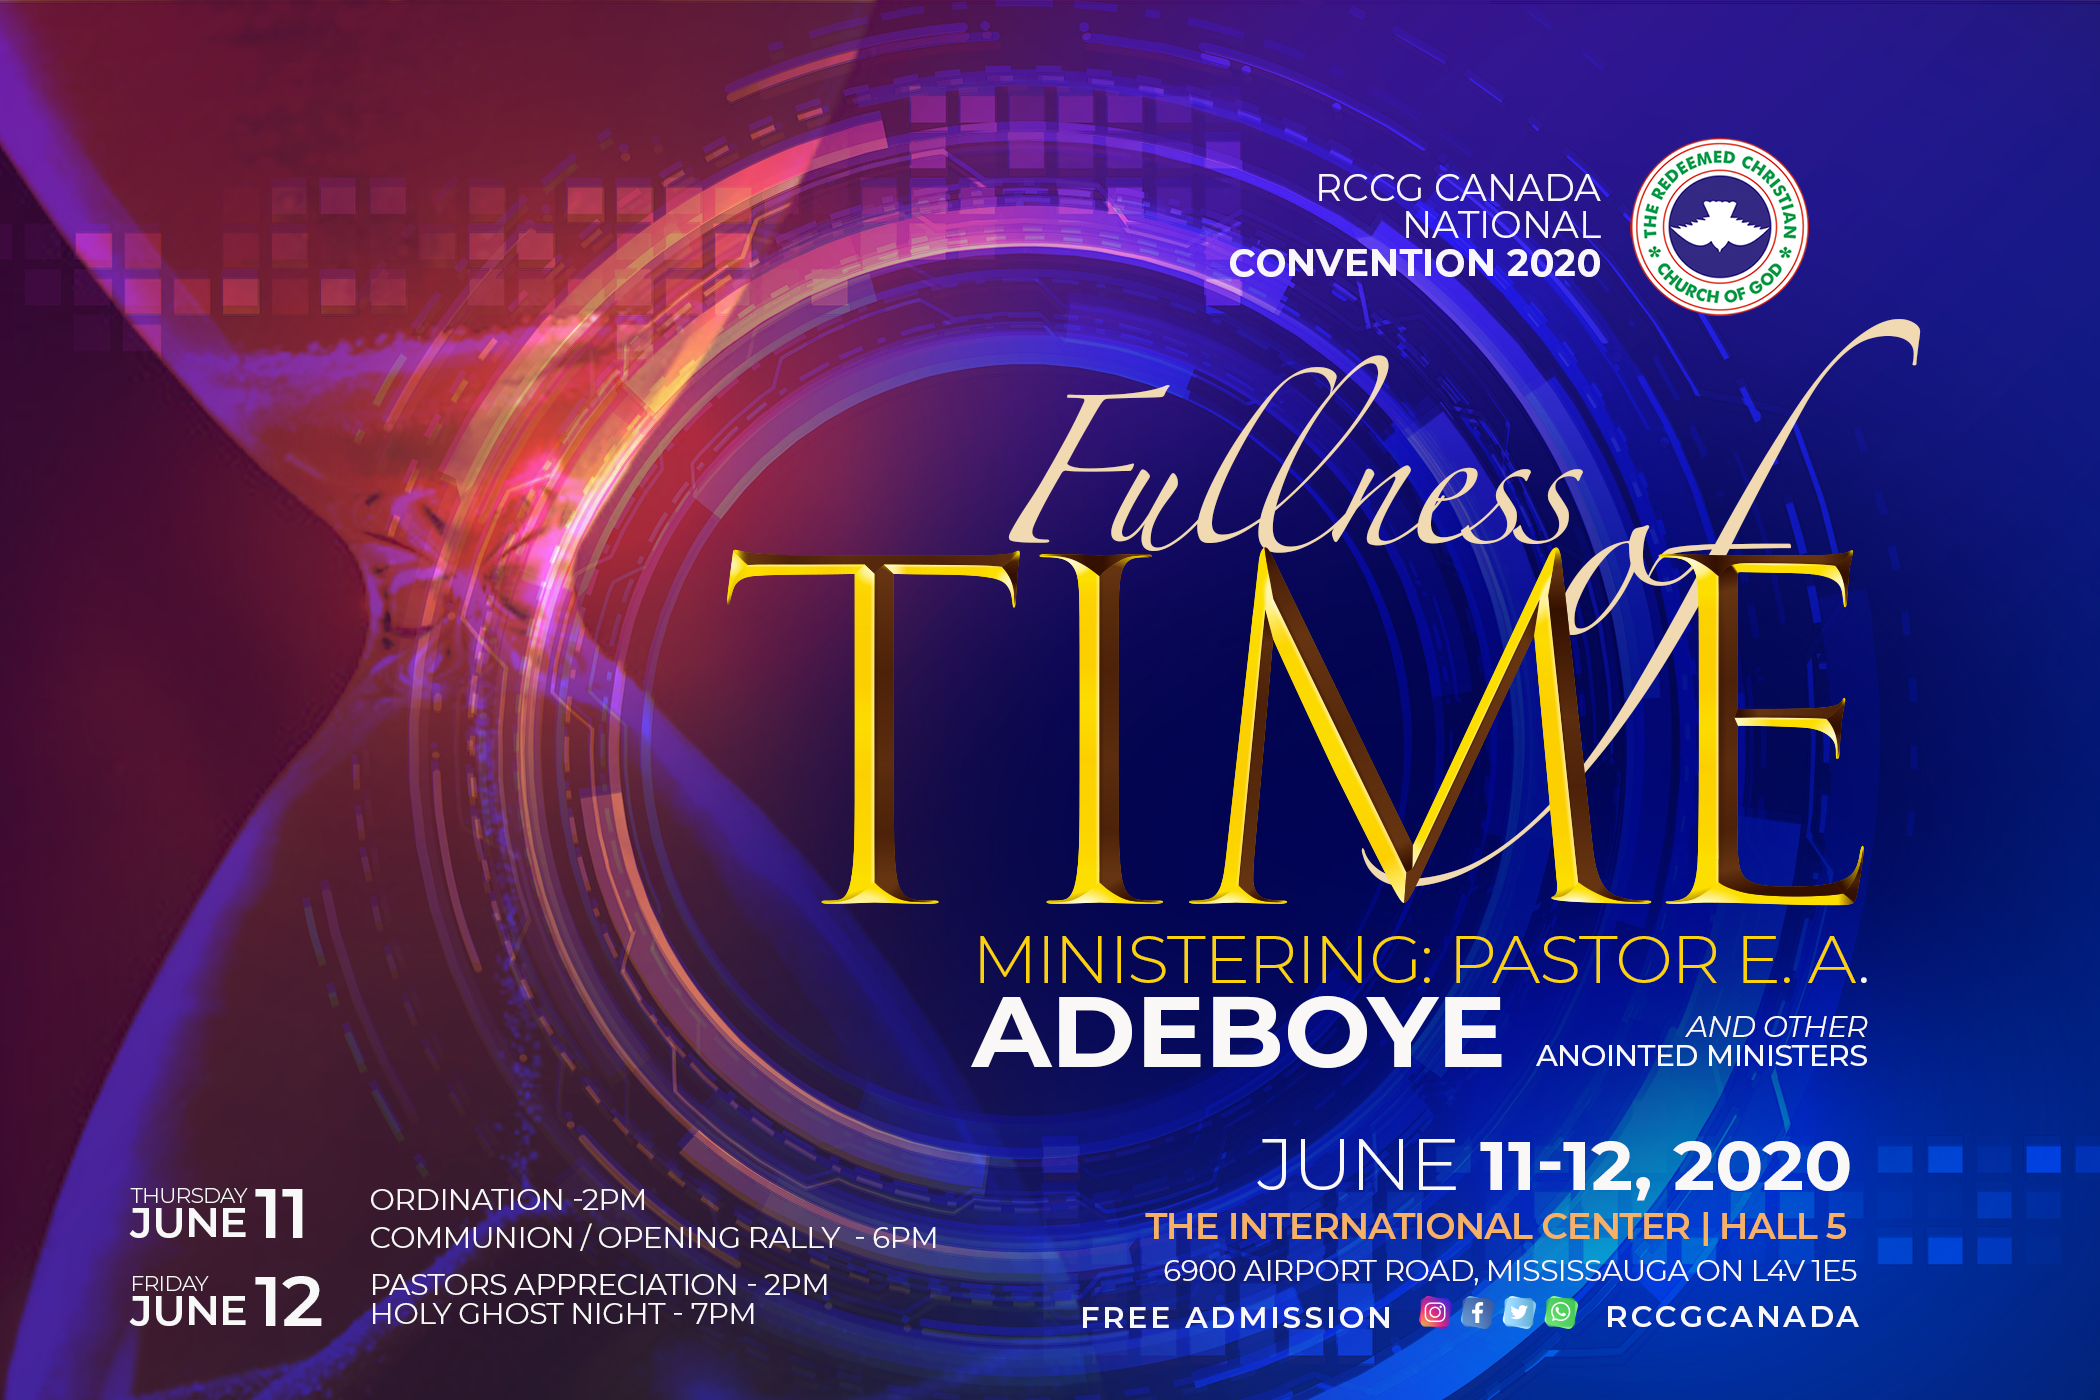 RCCG Canada National Convention - 2020 @ The International Center